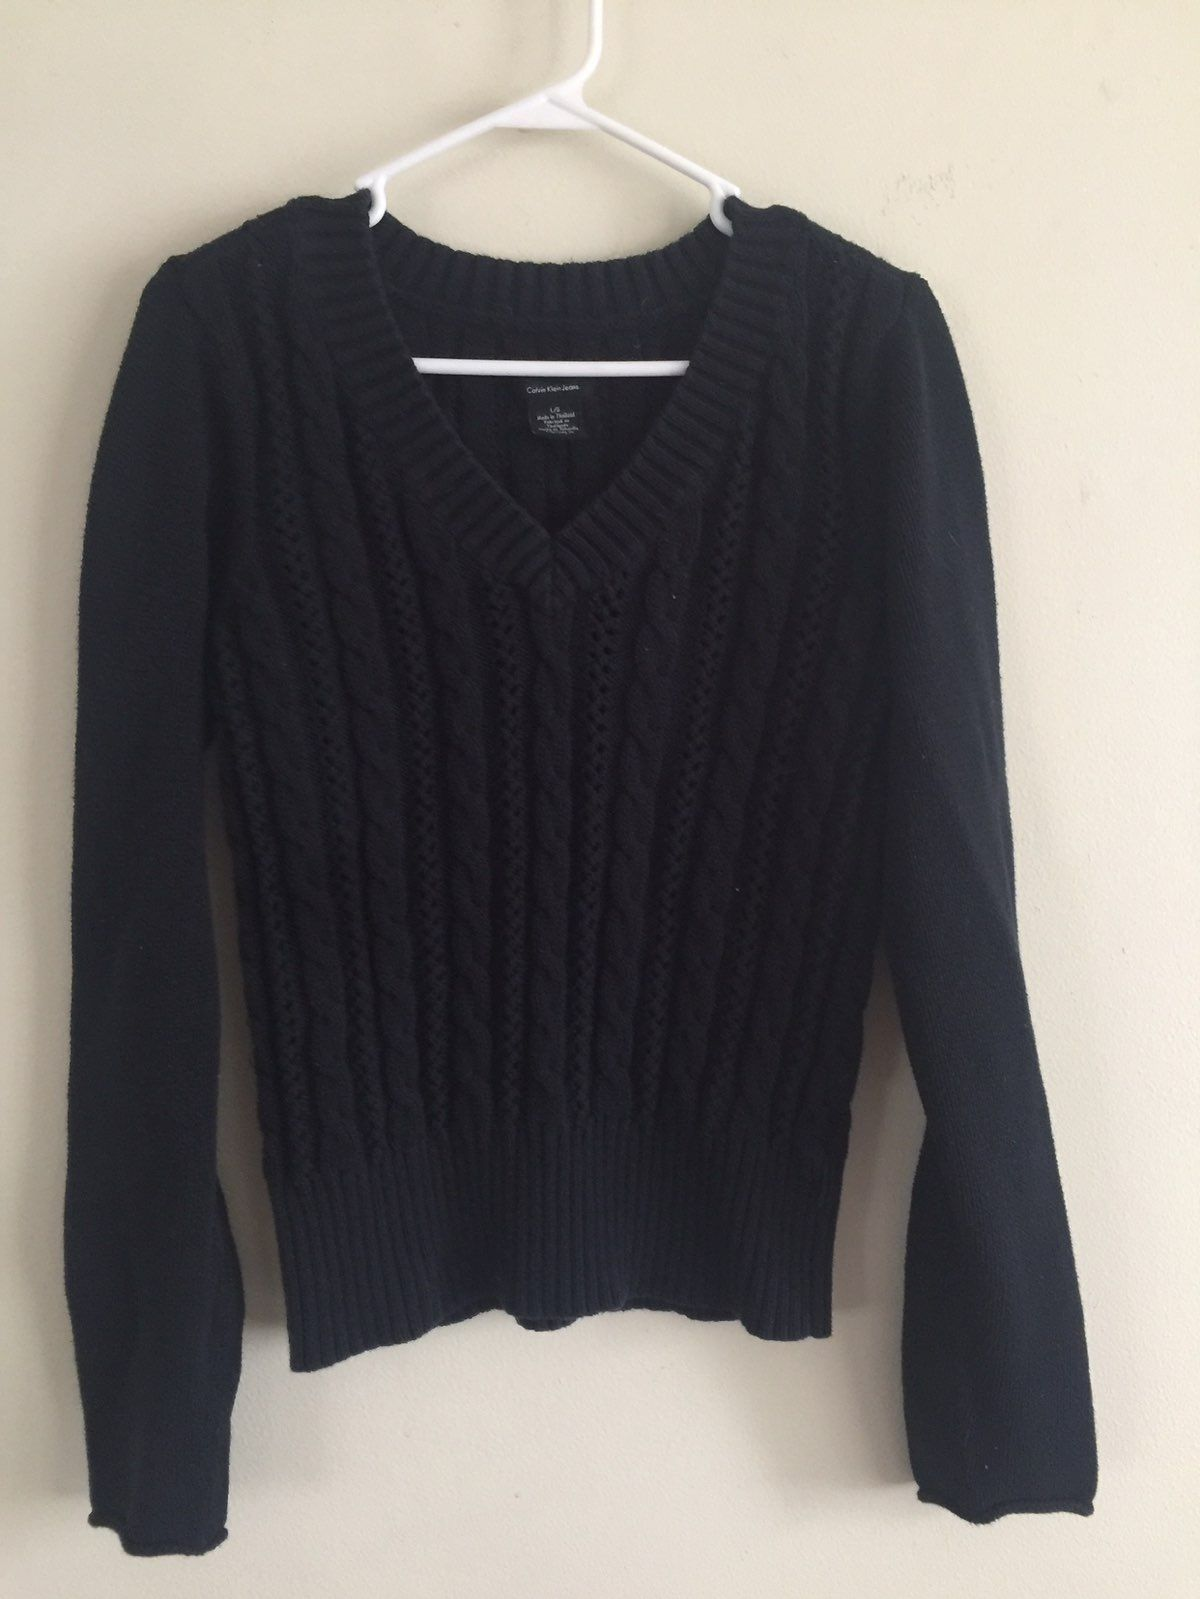 Calvin Klein V Neck Cable Knit Sweater - Mercari: BUY & SELL ...